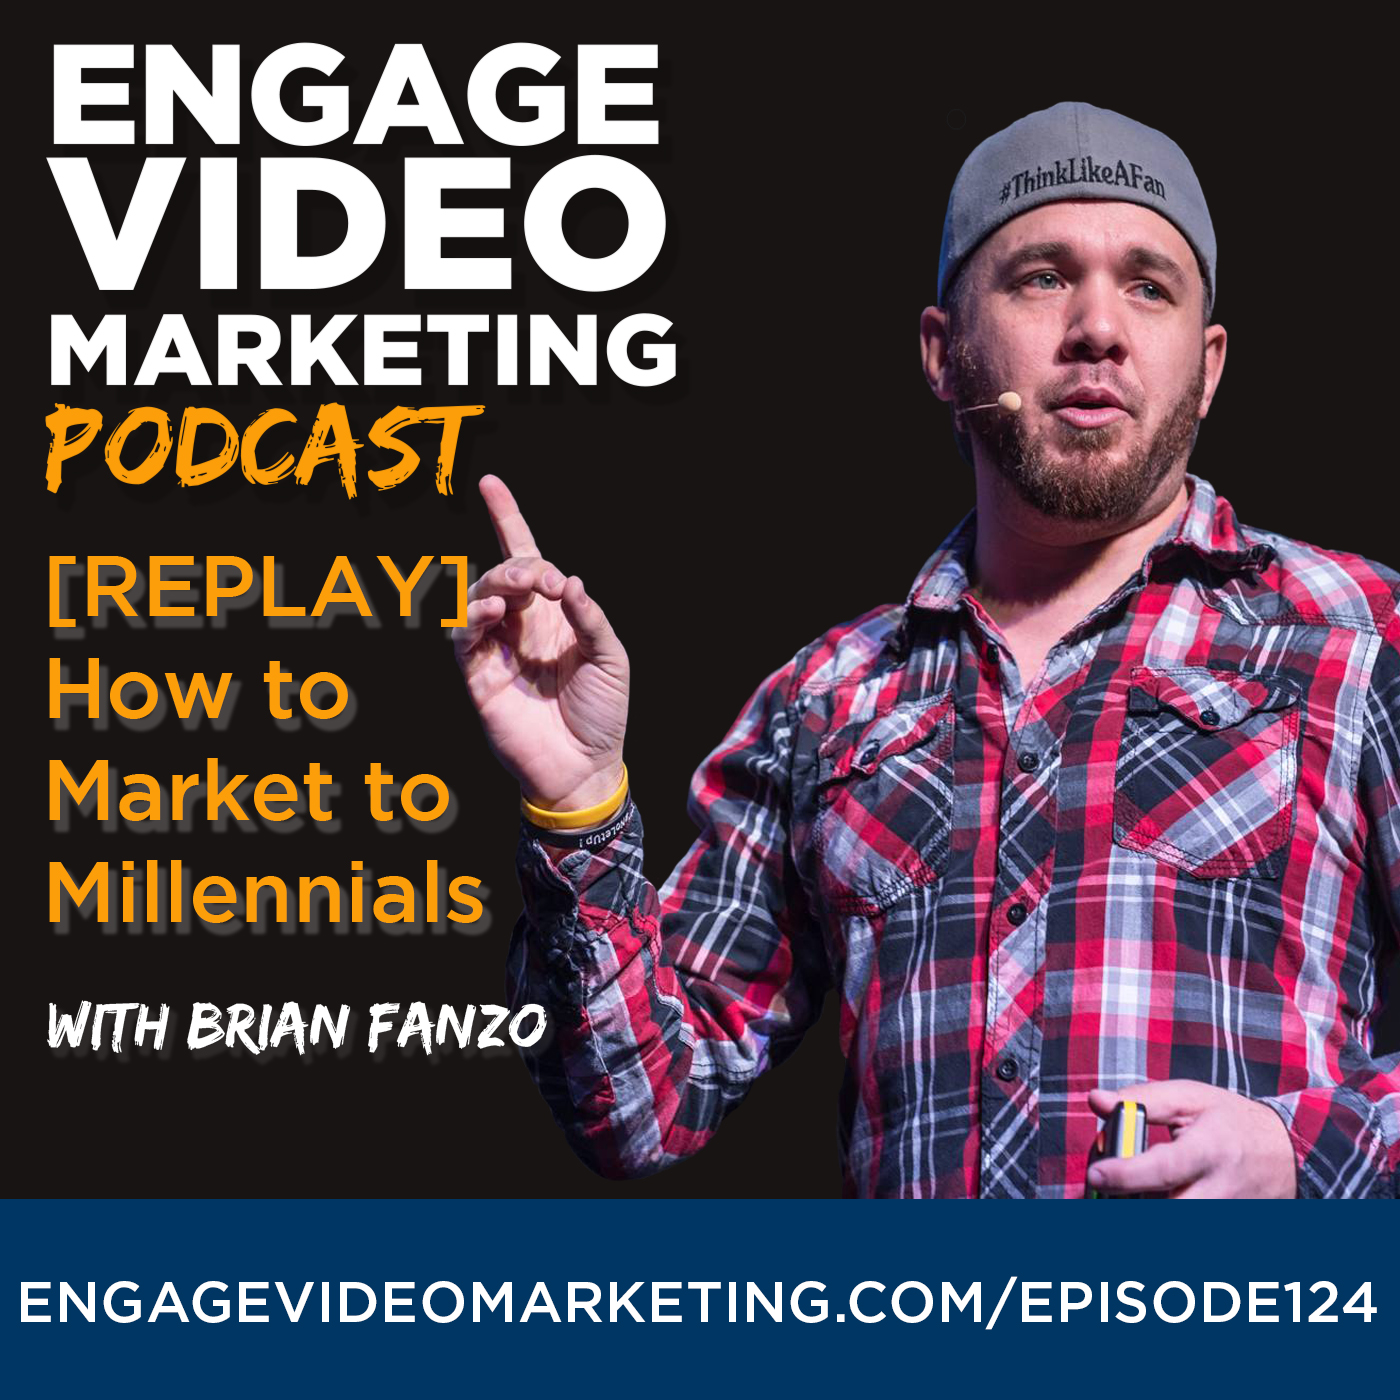 [REPLAY] How to Market to Millennials with Brian Fanzo